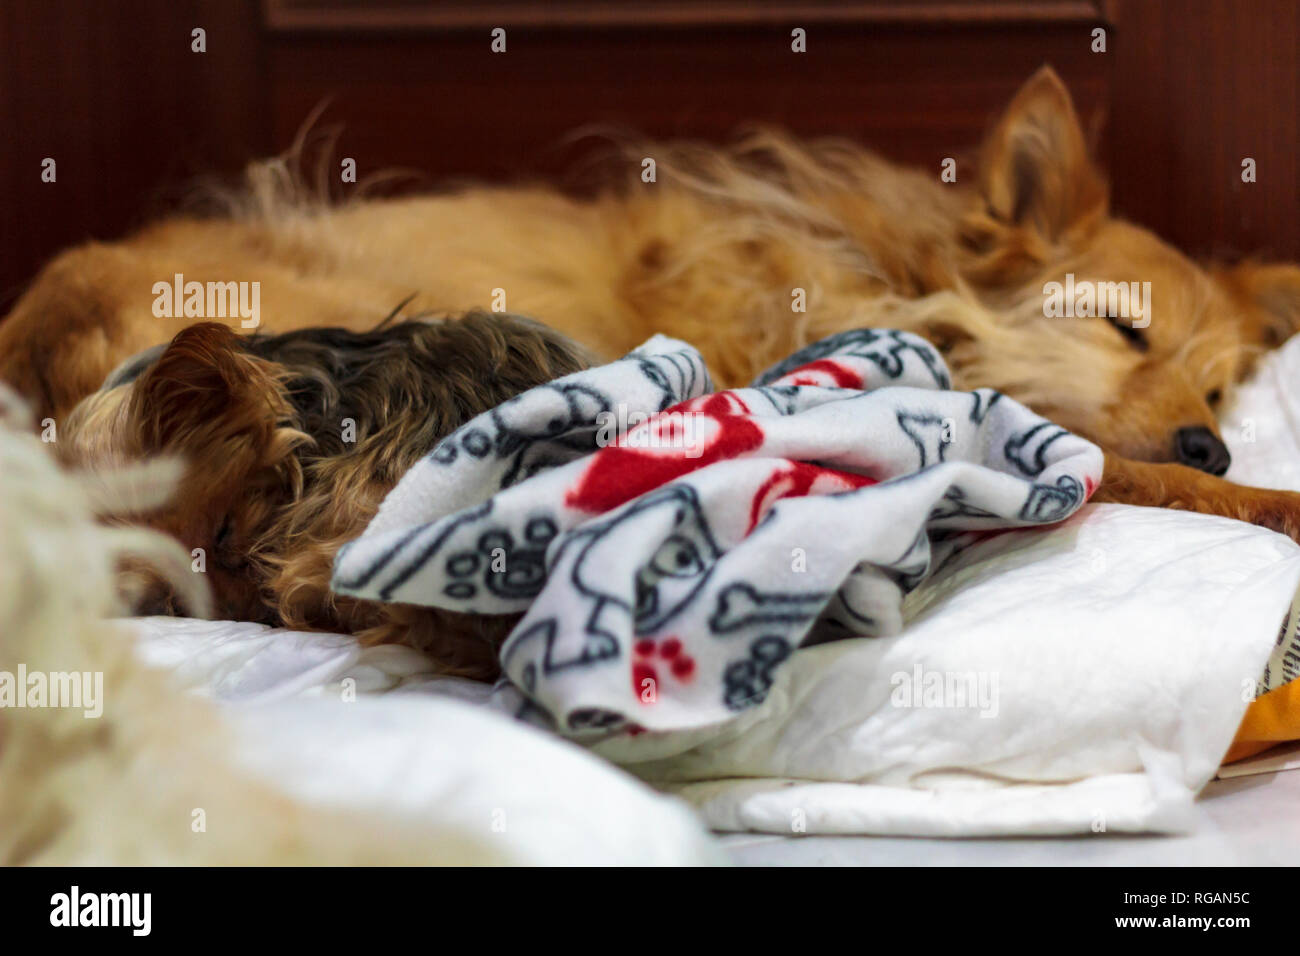 Two dogs sleeping in the same bed - Stock Image